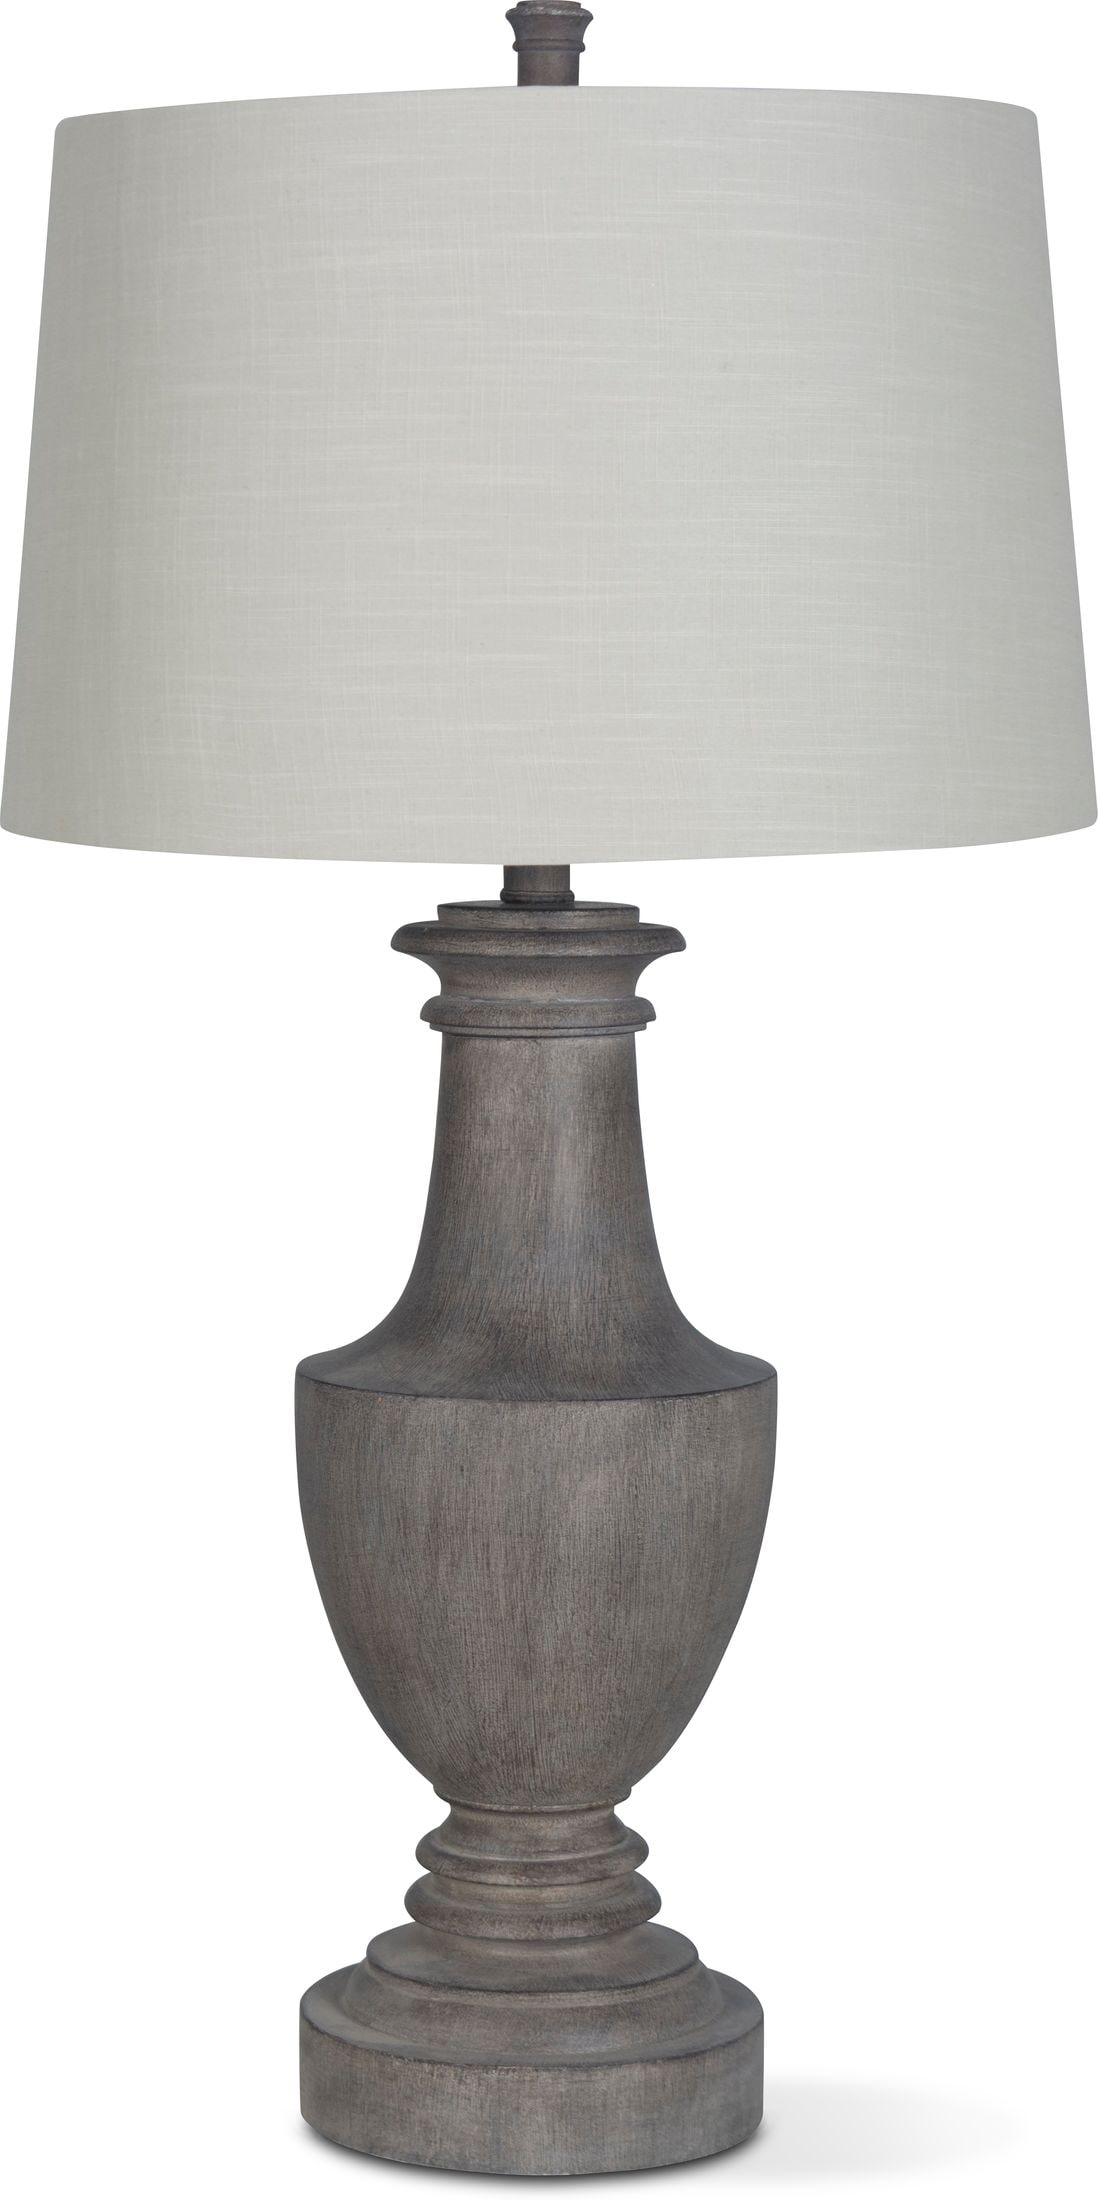 Home Accessories - Brushed Gray Table Lamp